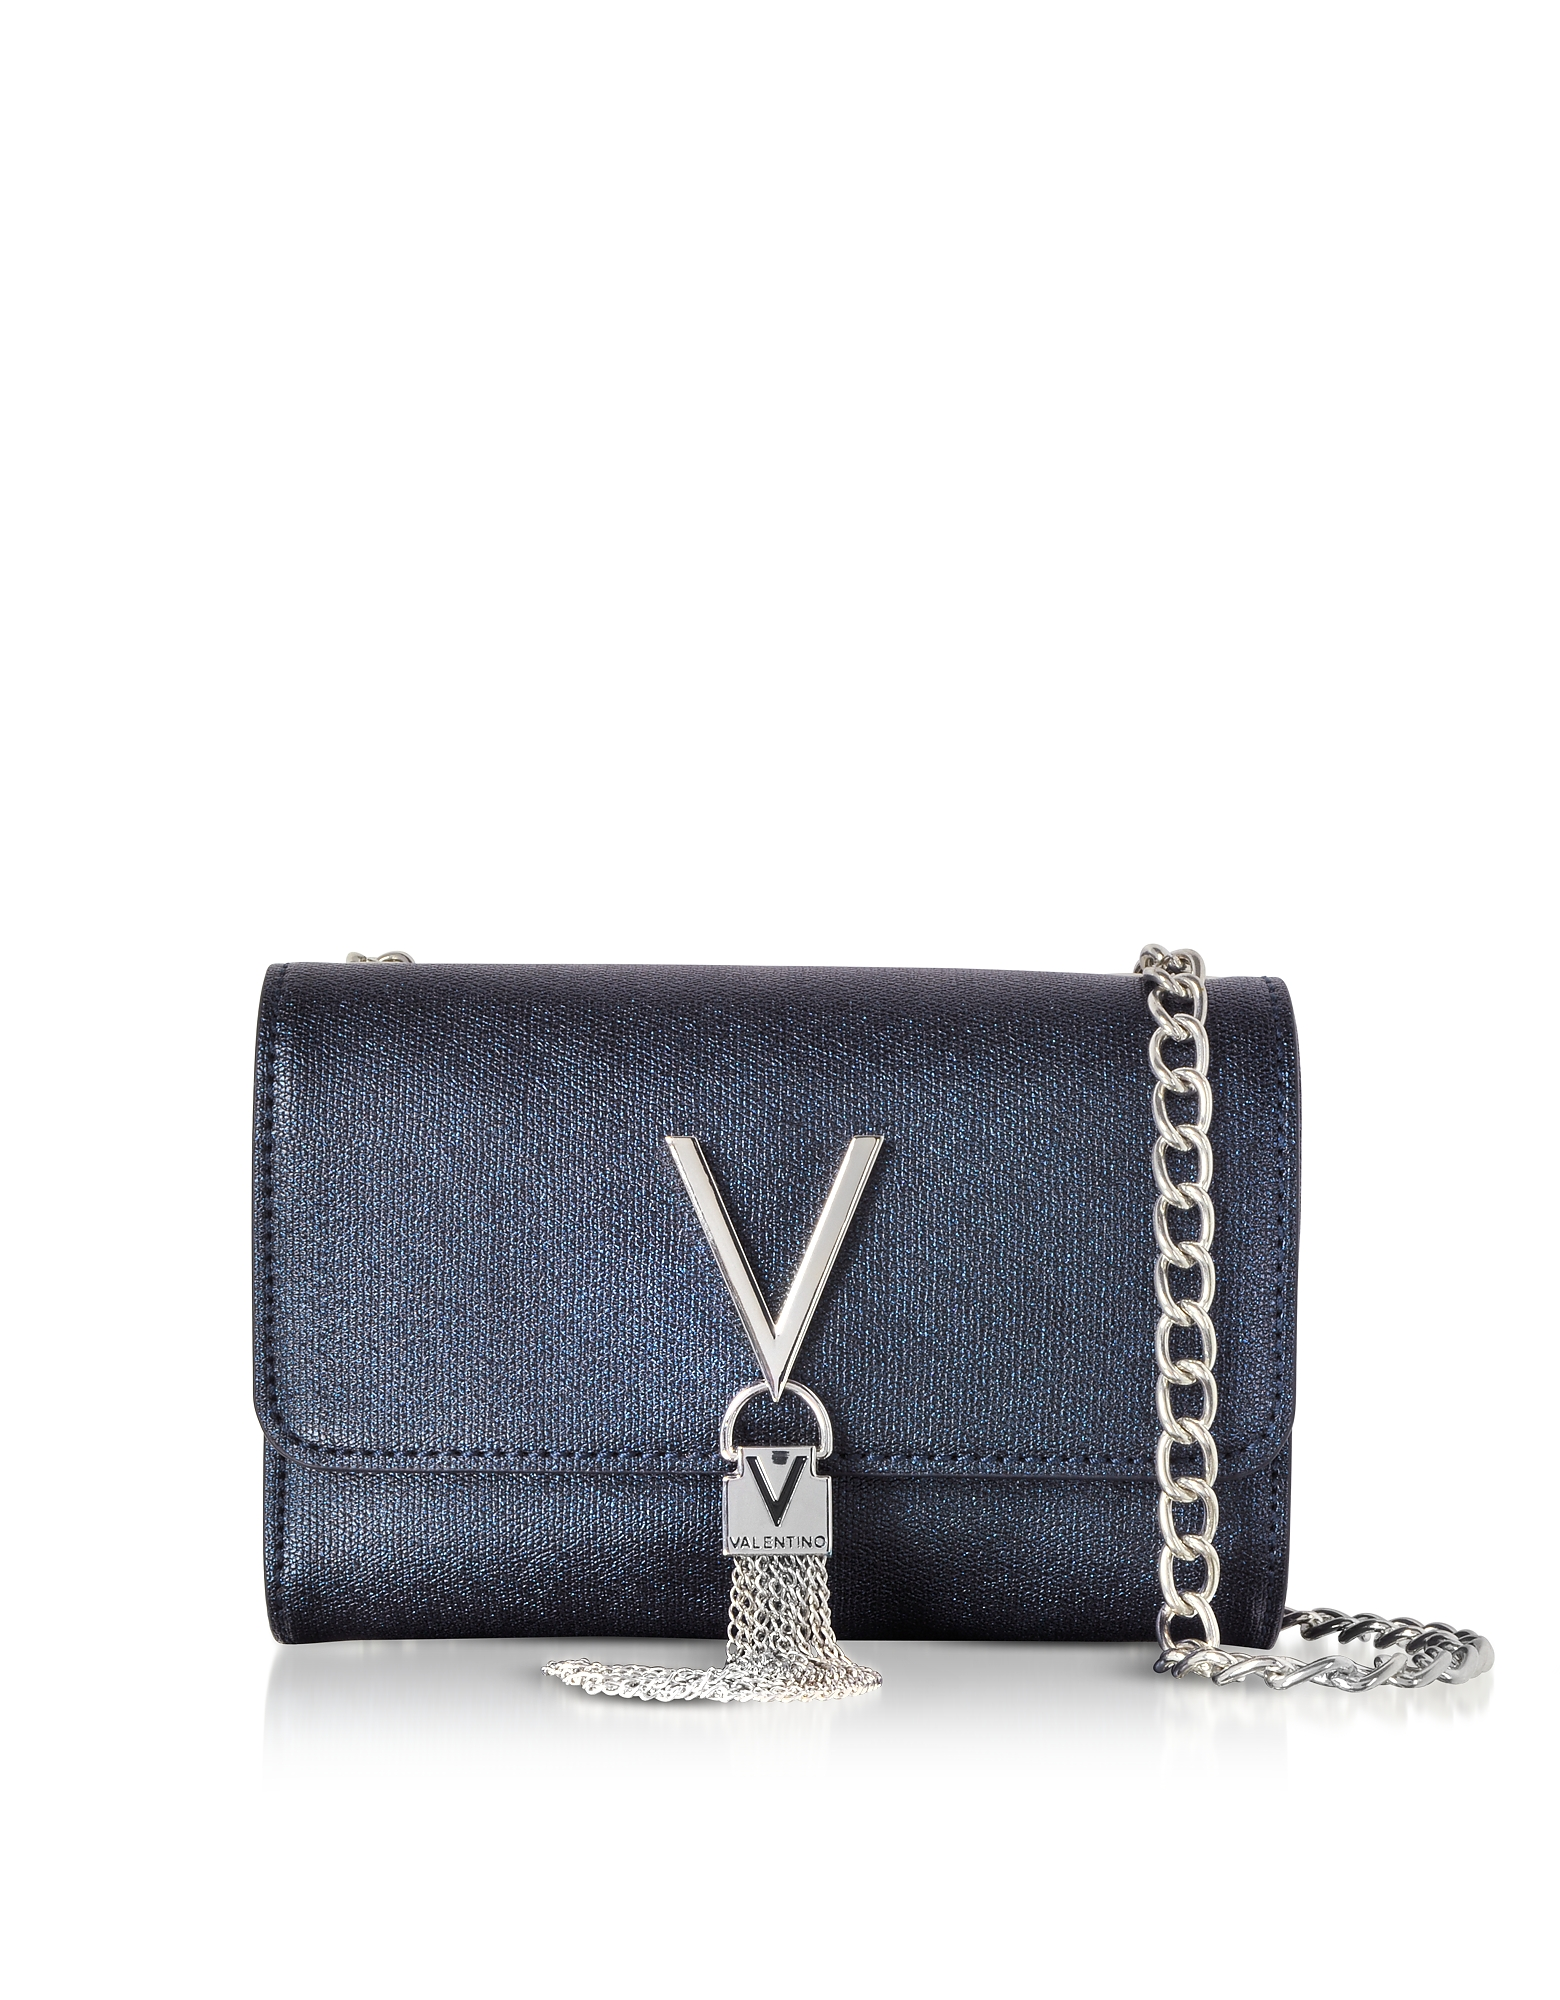 VALENTINO BY MARIO VALENTINO Eco Grained Leather Marilyn Mini Shoulder Bag